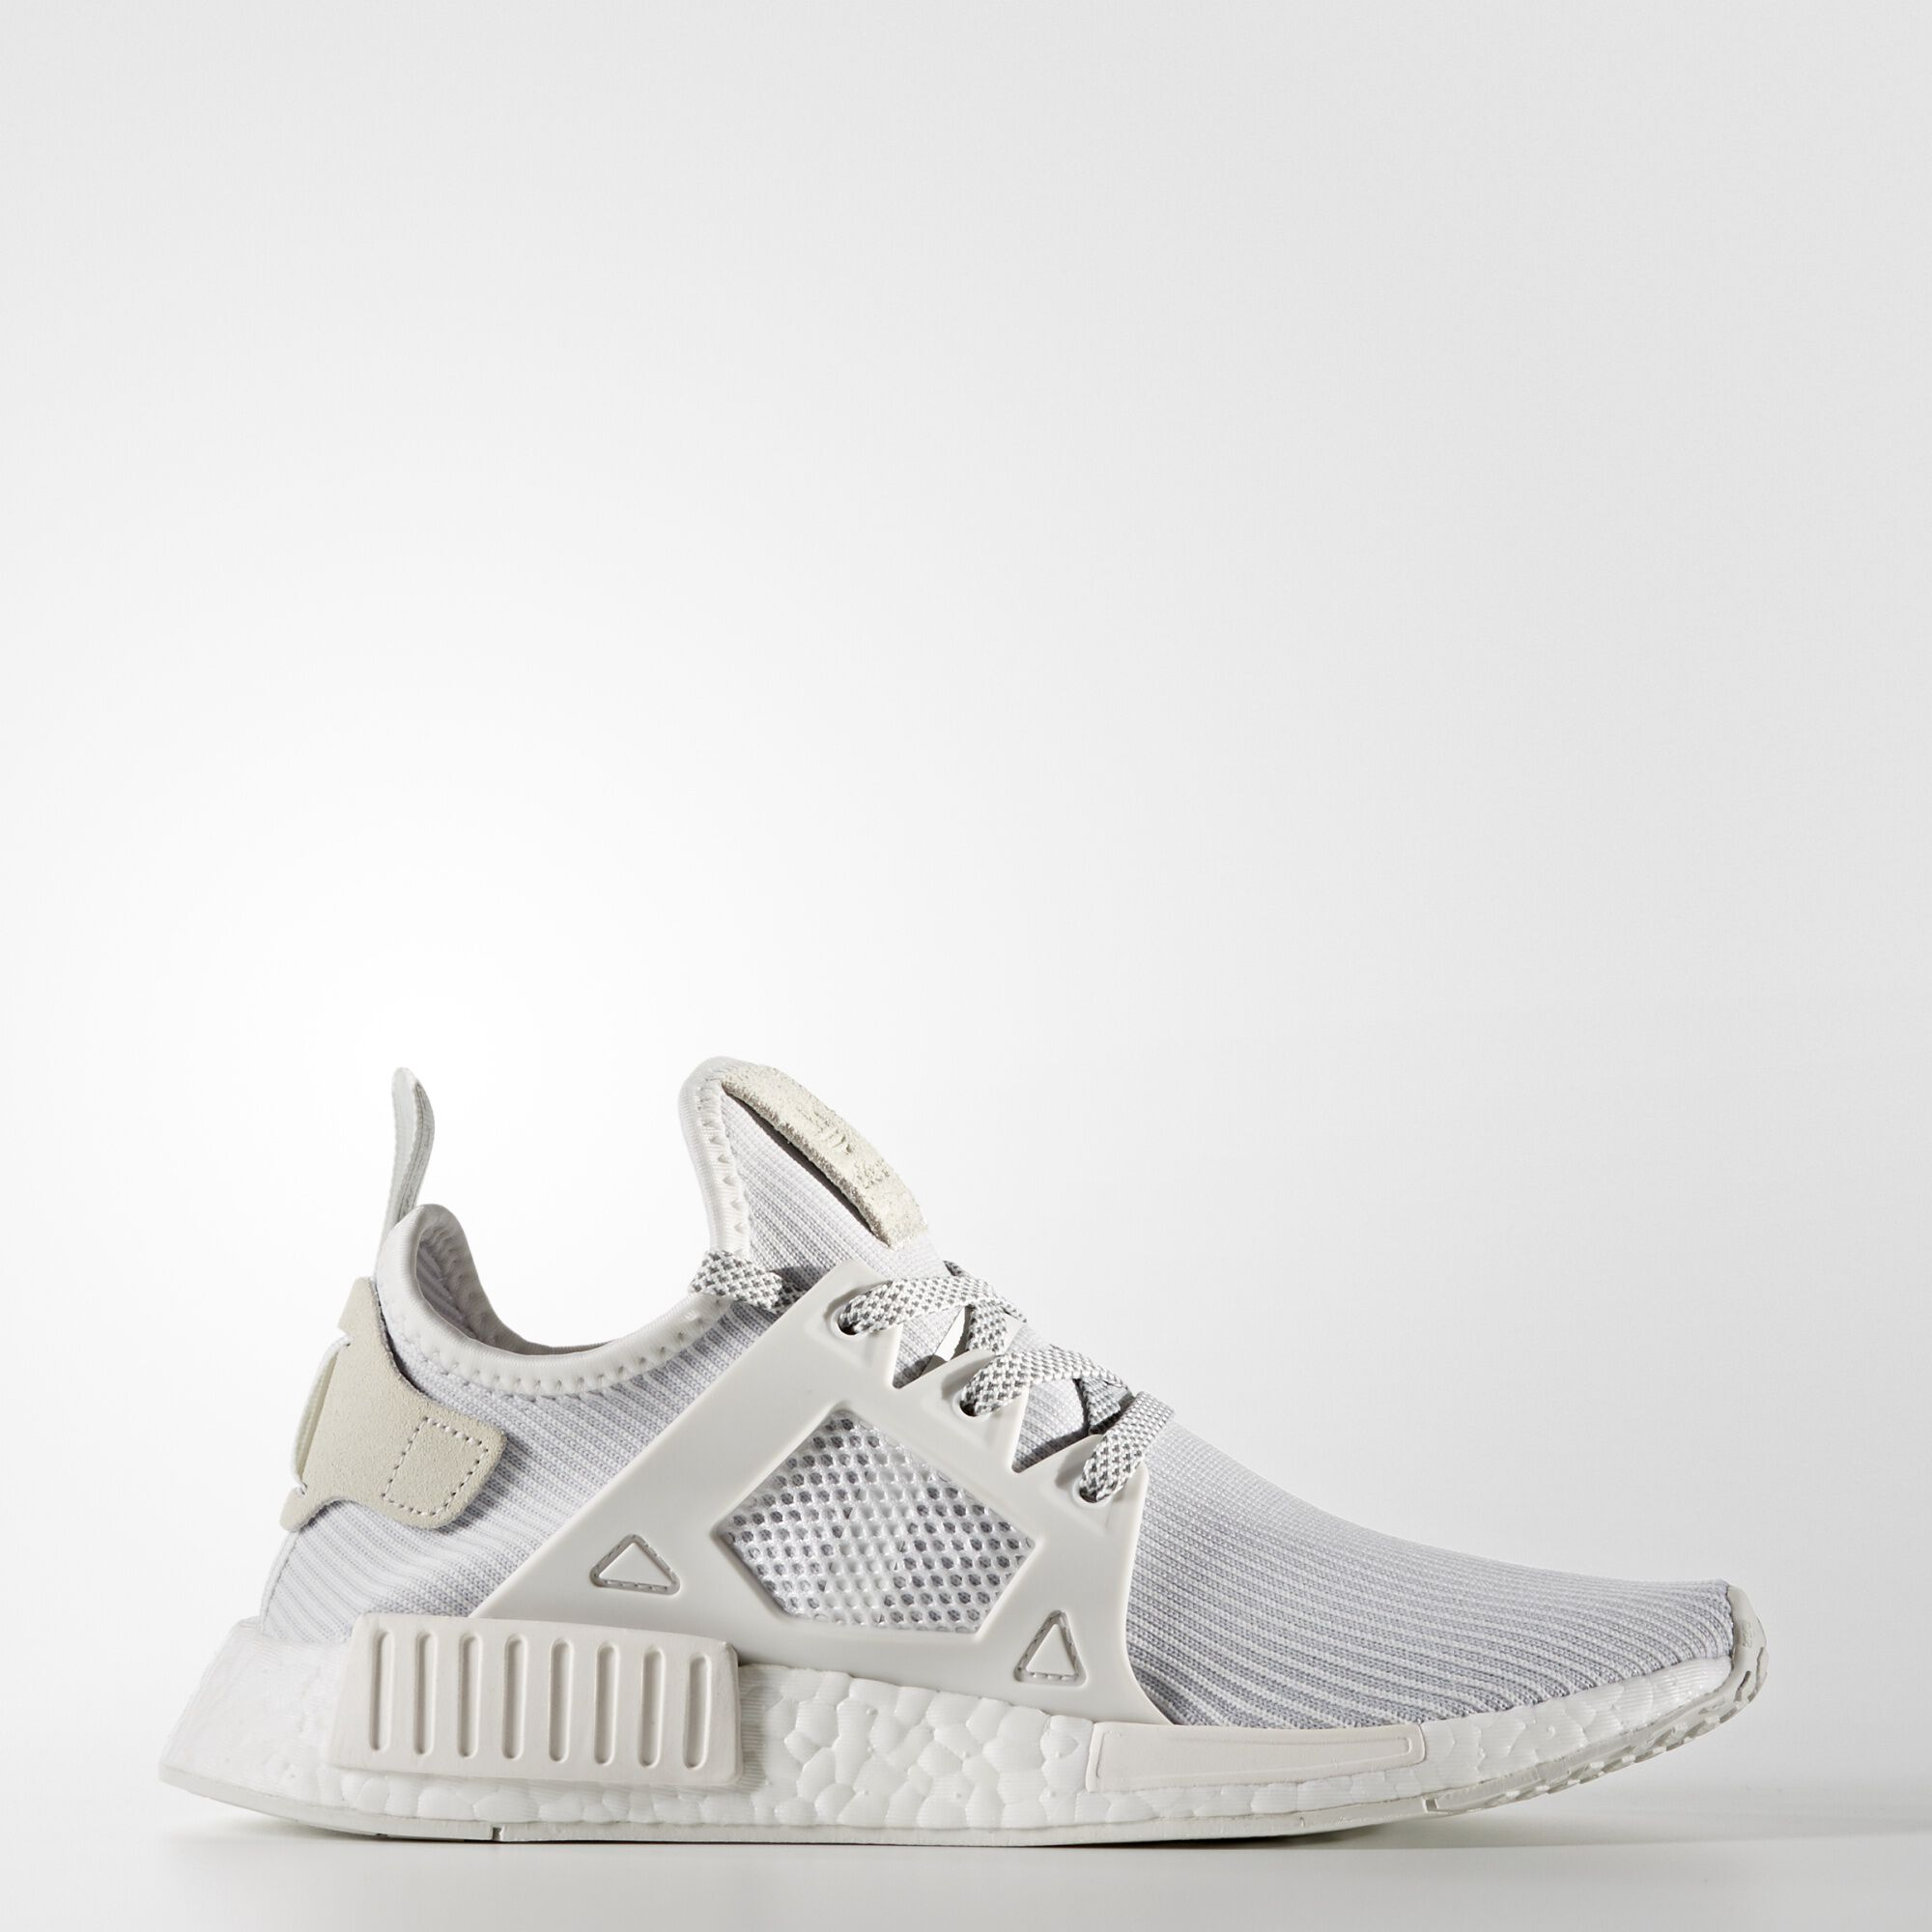 Adidas NMD R1 Archives Sneaker Contact